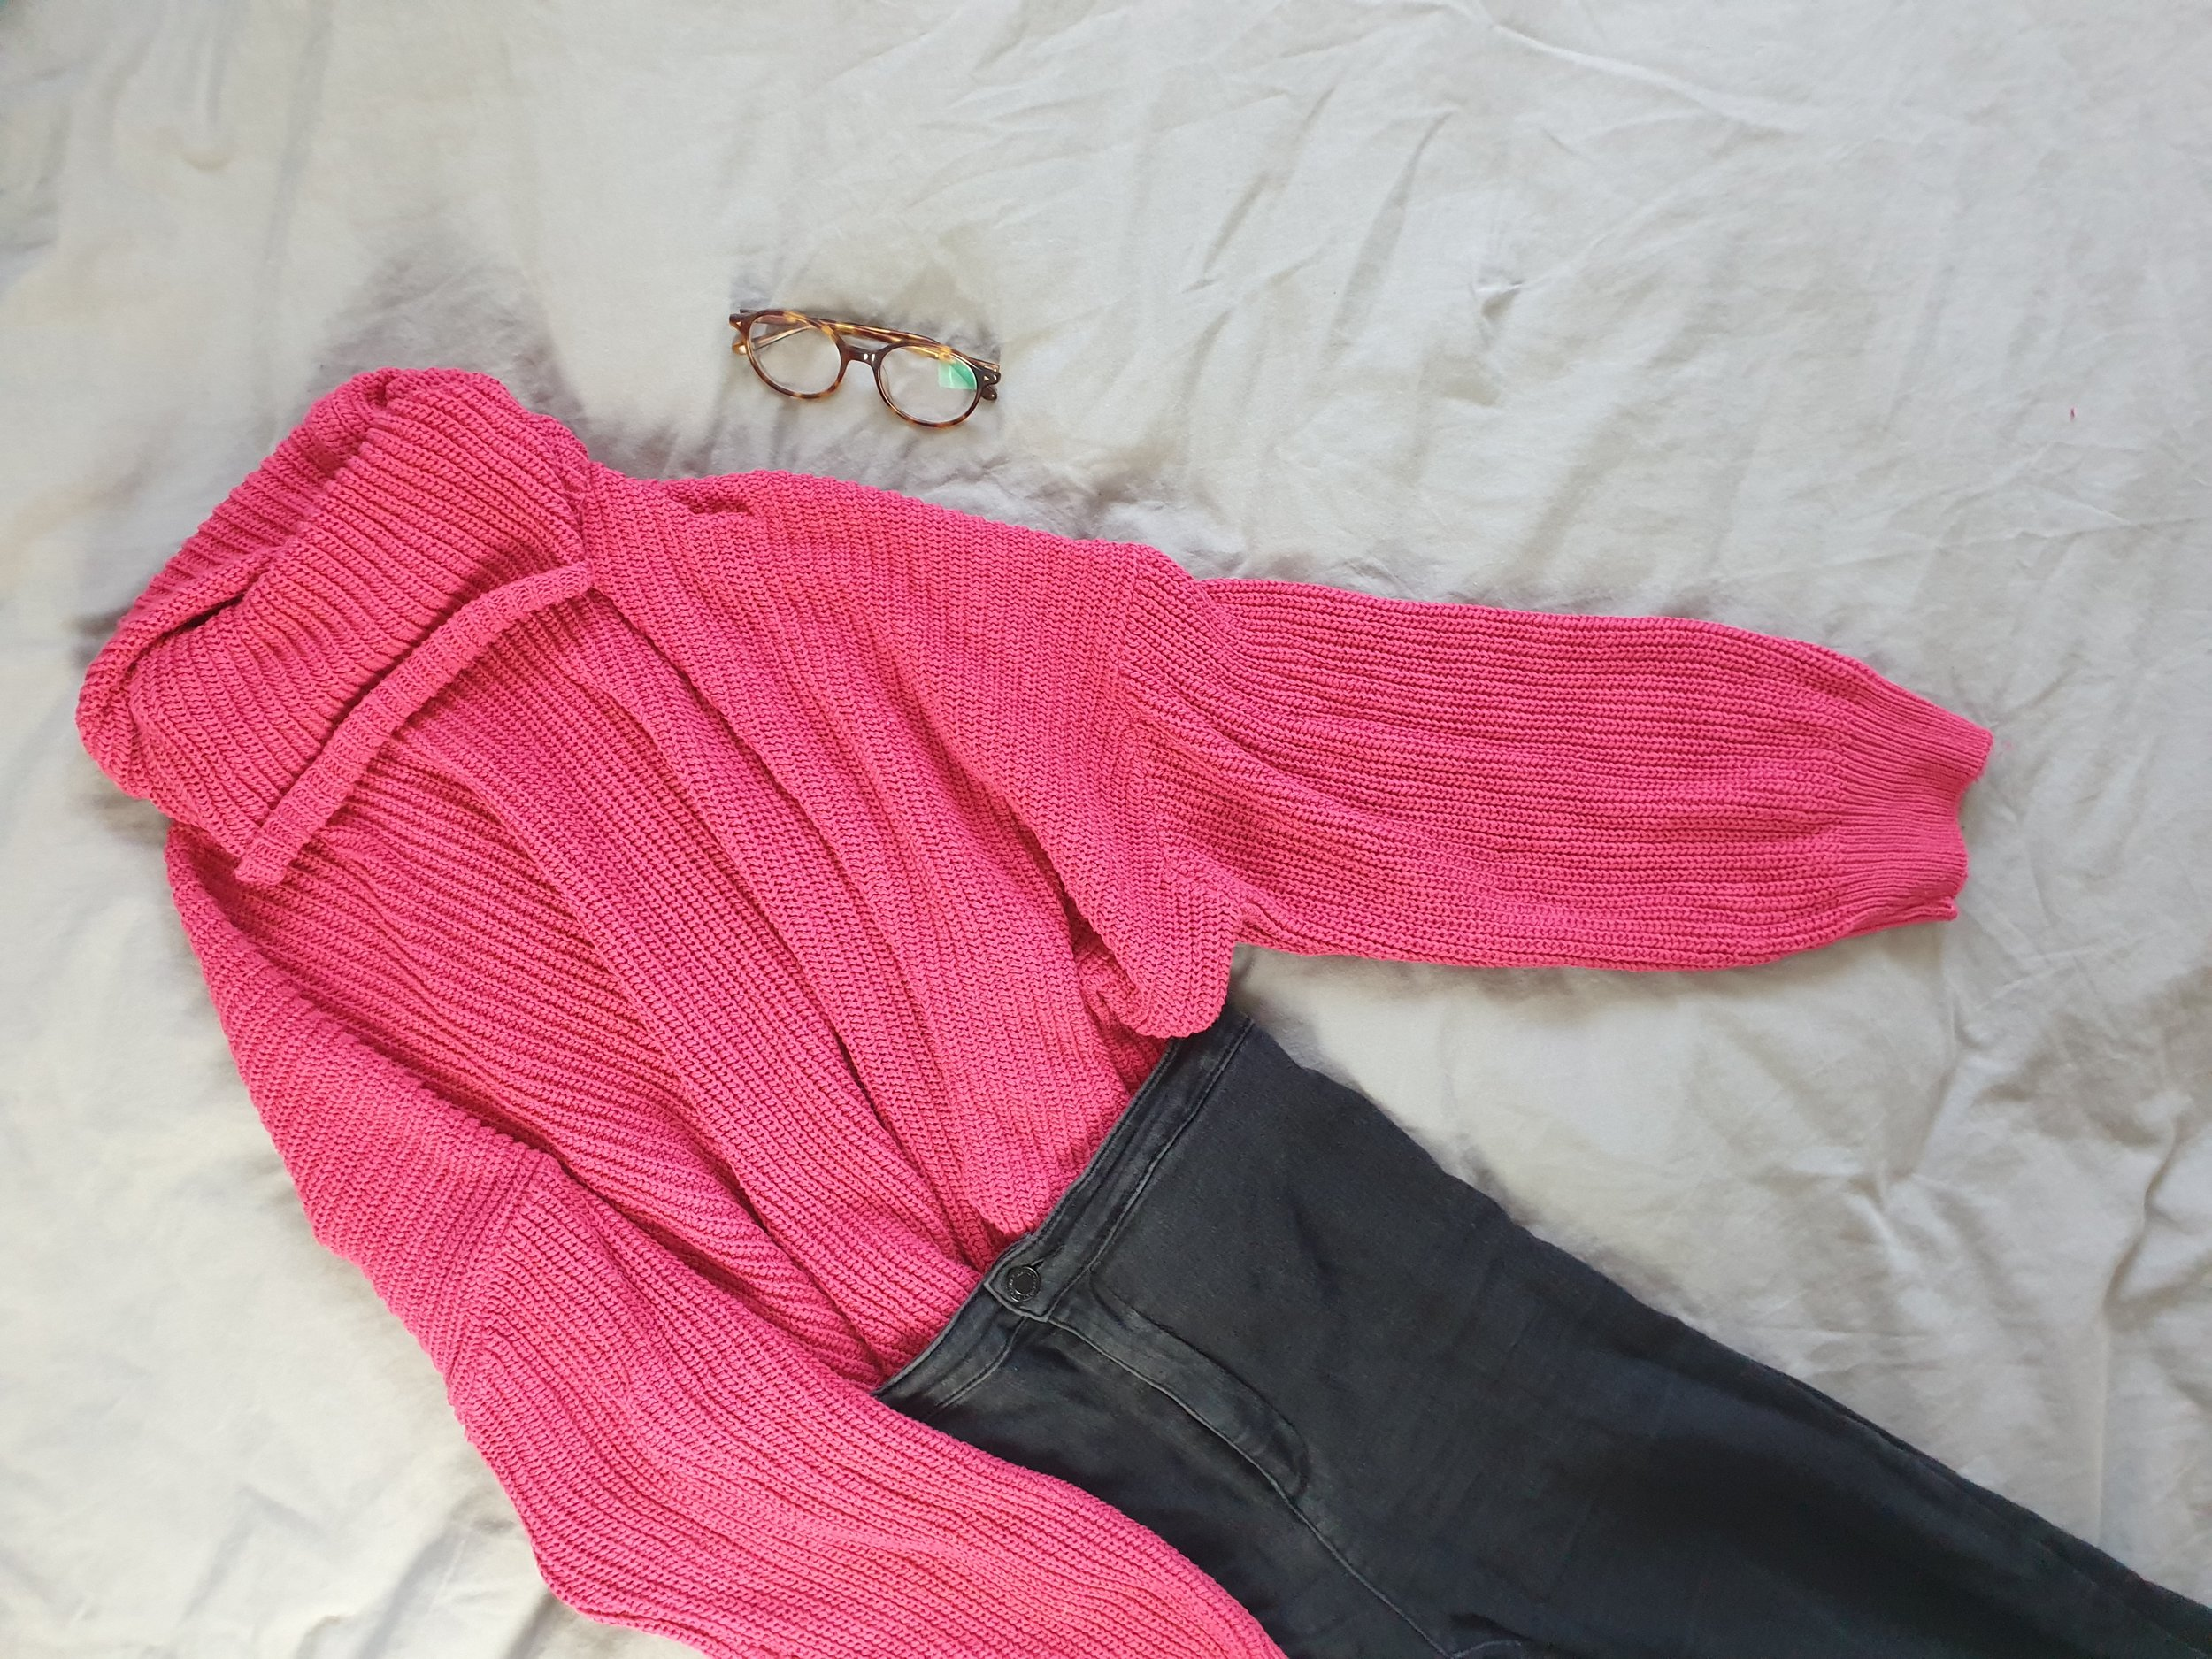 fashion blogger office wallflower inspired ootd outfit of the day https://femmeluxefinery.co.uk/collections/hoodies-sweatshirts/products/fuchsia-knitted-oversized-polo-neck-jumper-polly